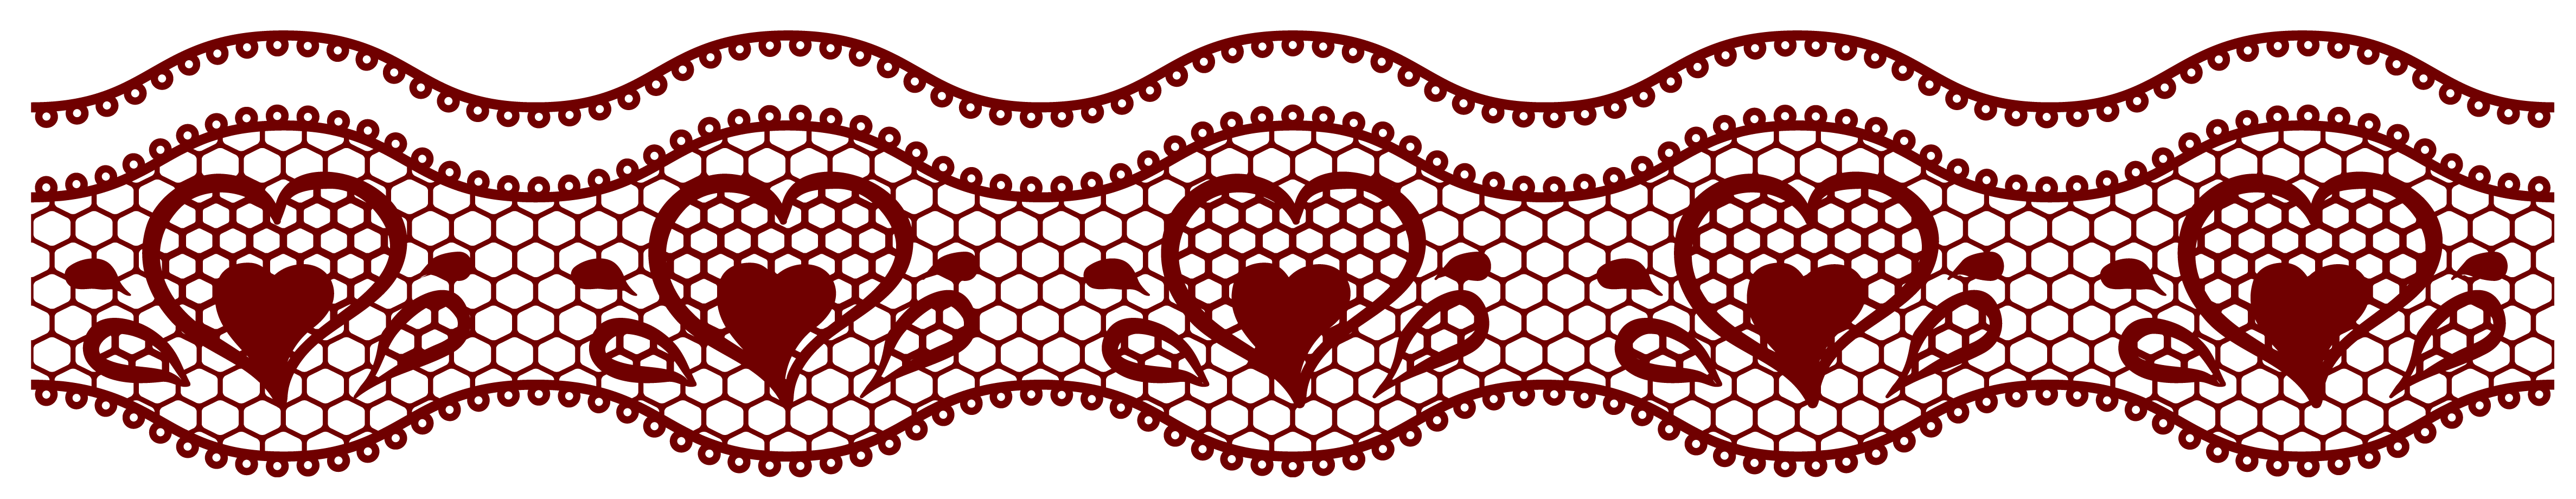 image transparent stock  collection of lace. Laces clipart line.